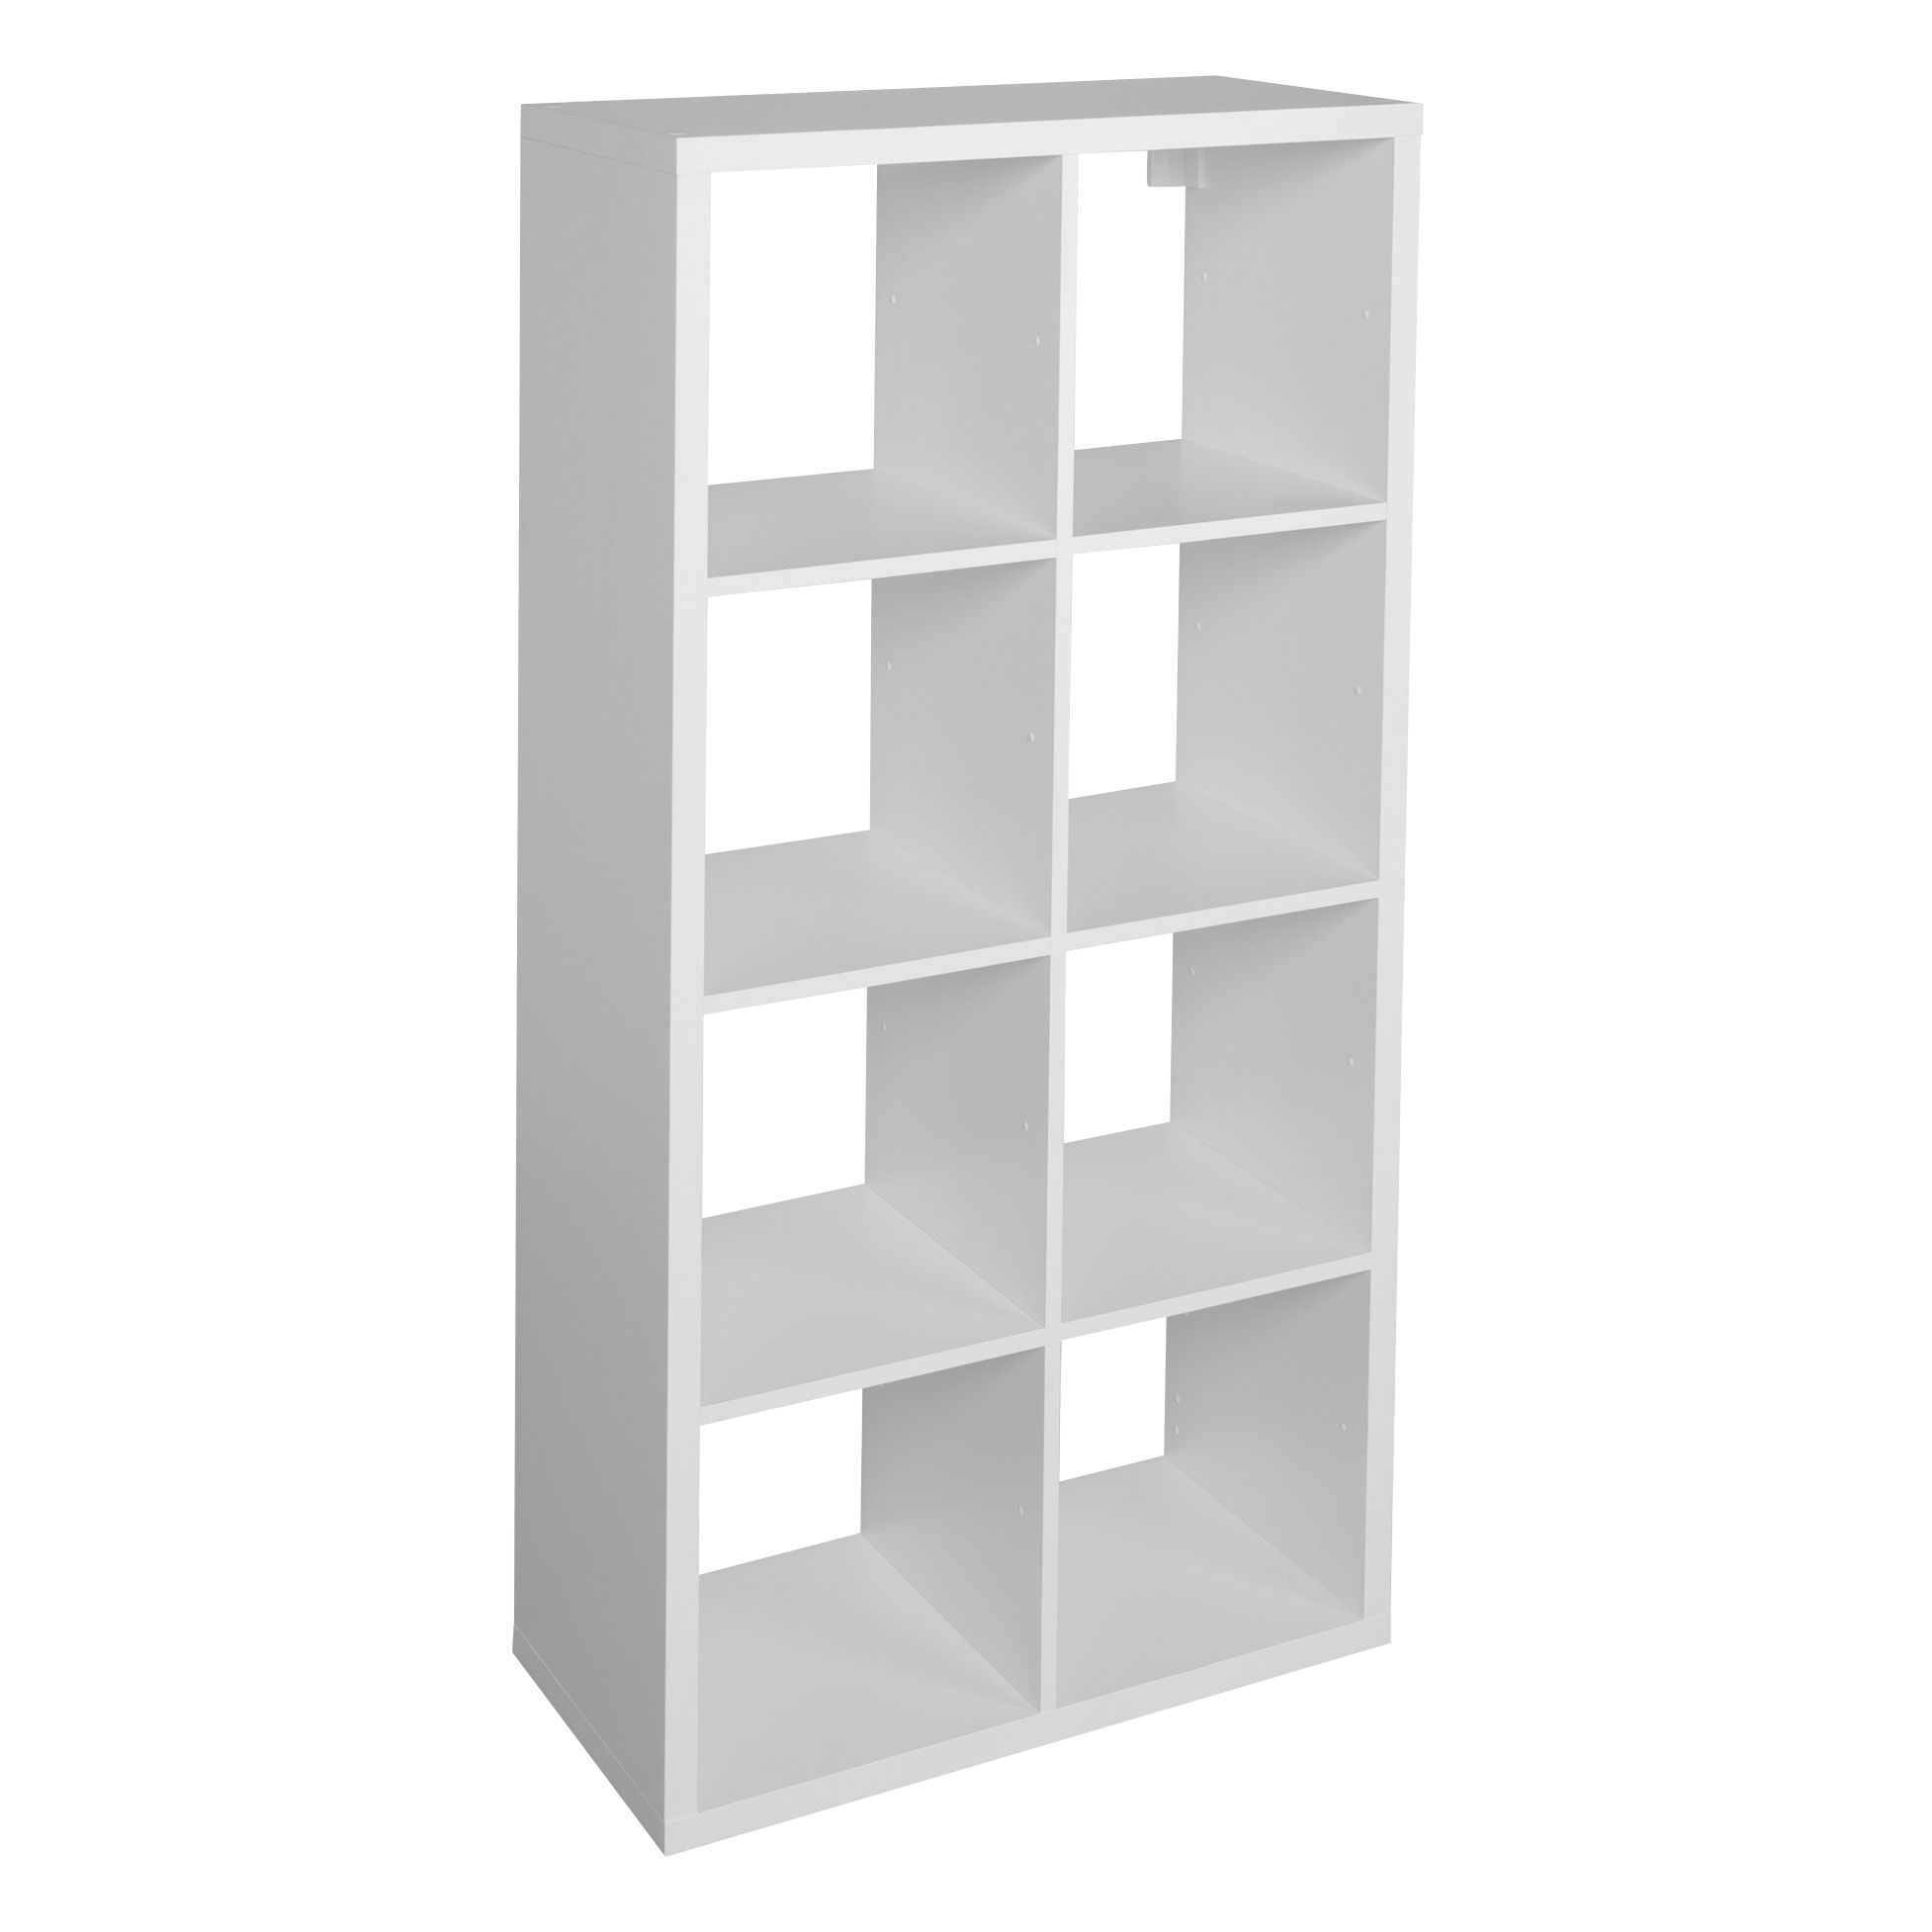 form mixxit white 8 cube shelving unit h 1420mm w 740mm rh everydiy uk cube shelving with drawers cube shelving with doors